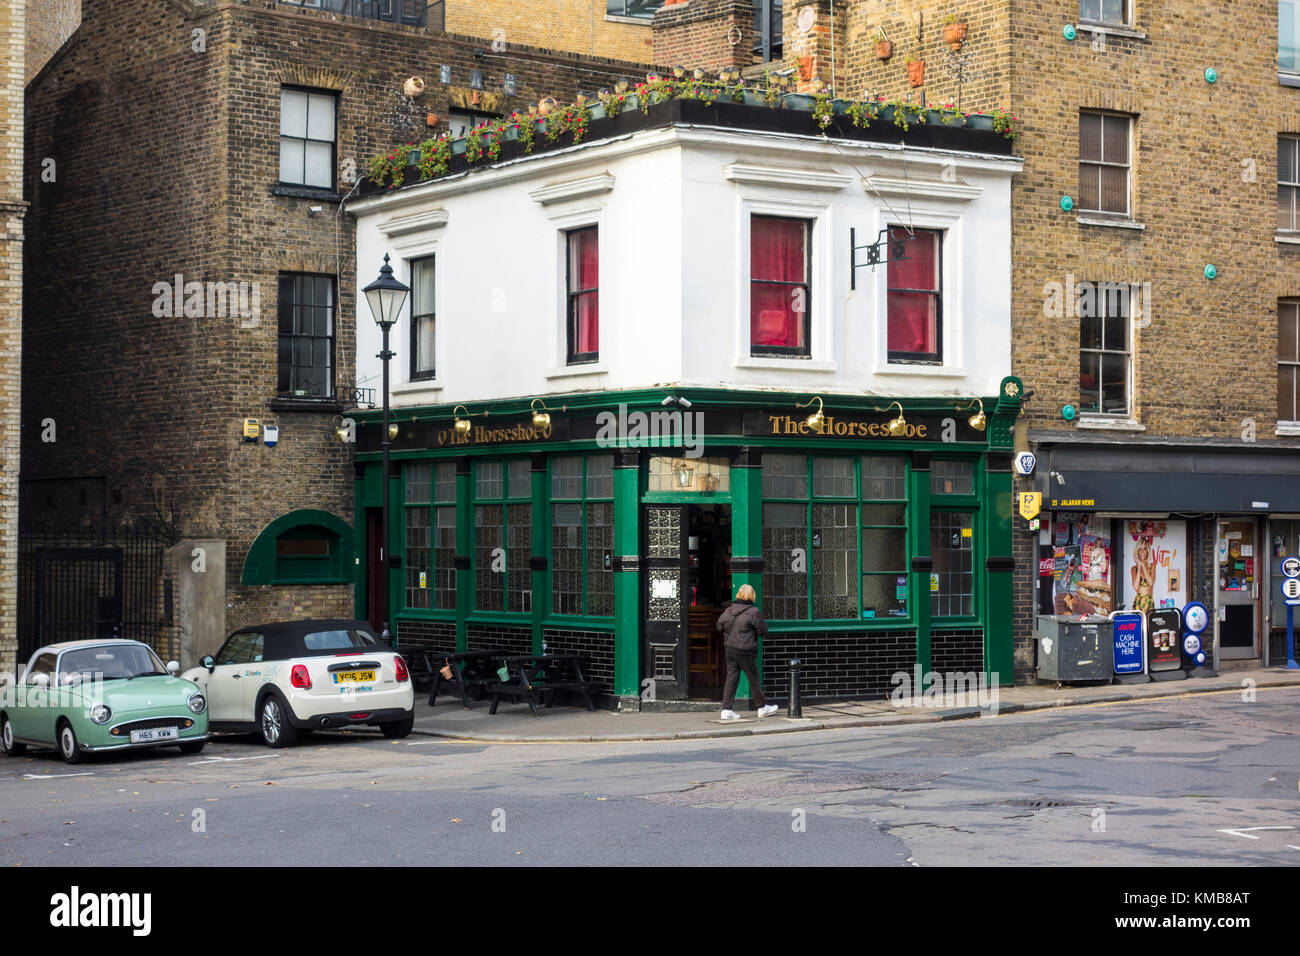 The Horseshoe pub public house bar, Clerkenwell Close, London, UK - Stock Image